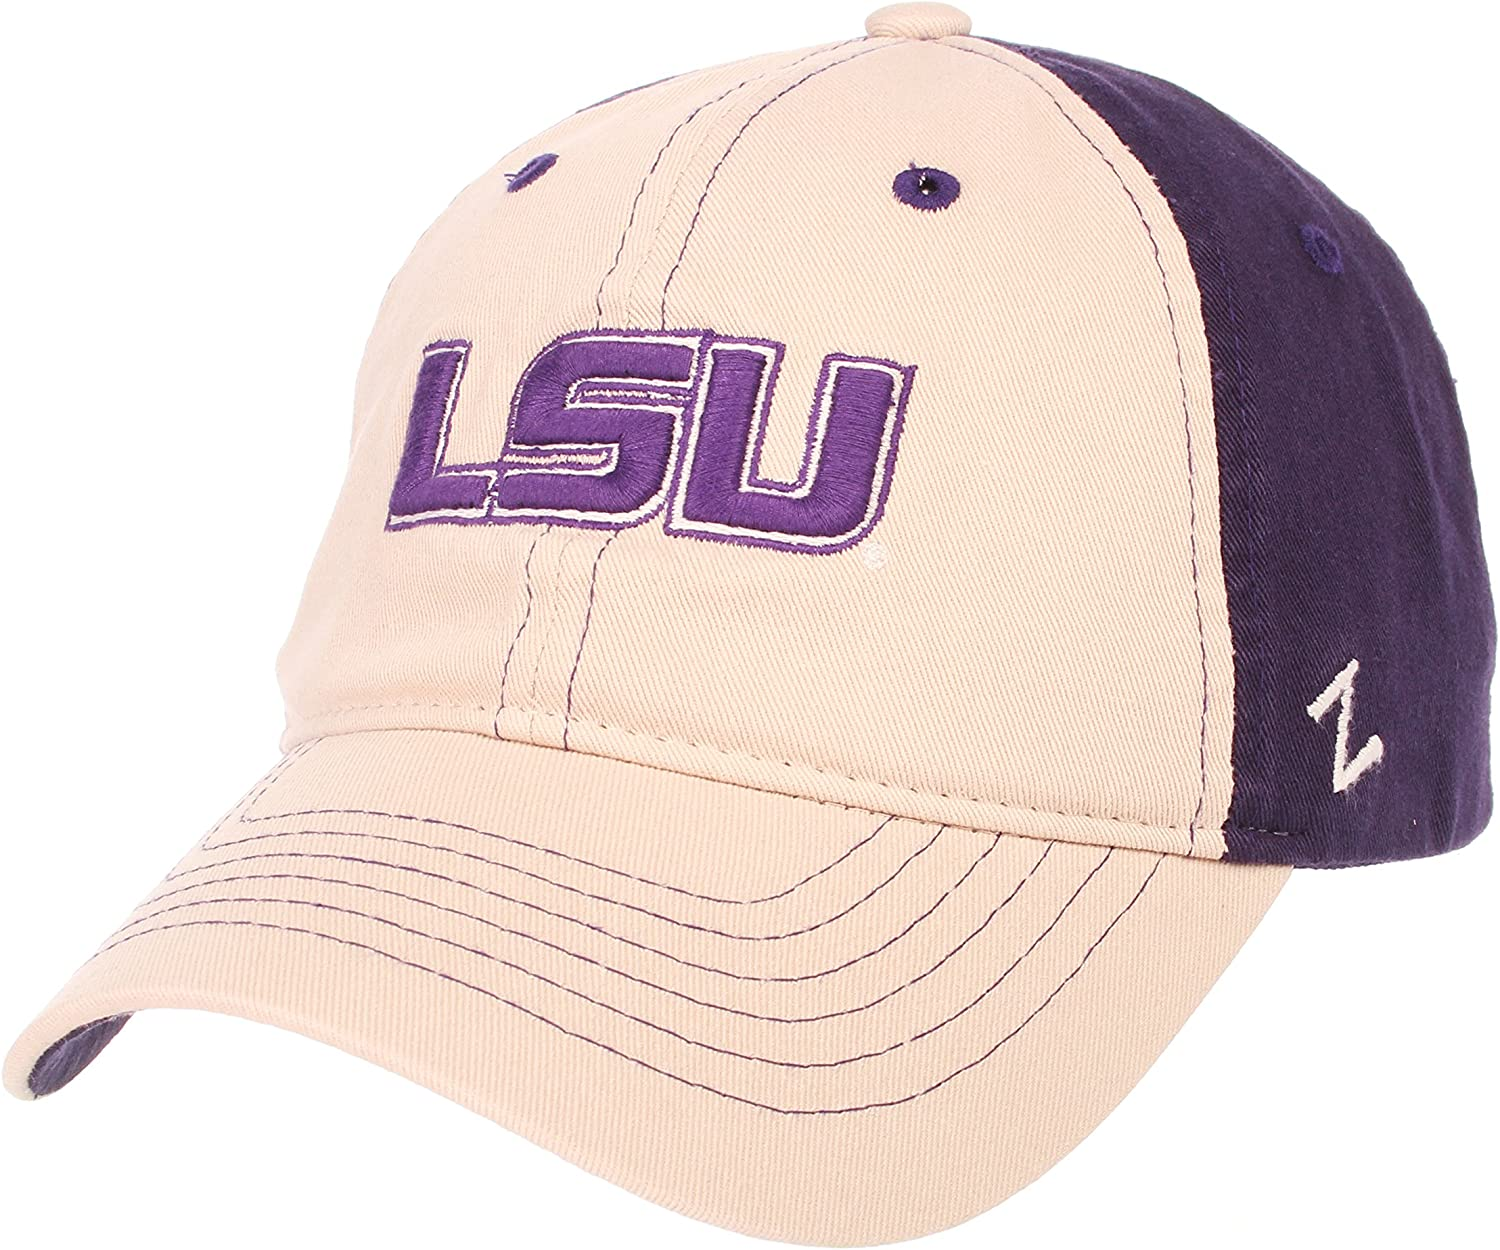 Stone//Team Color Adjustable NCAA Zephyr Lsu Tigers Mens The Dean Relaxed Hat